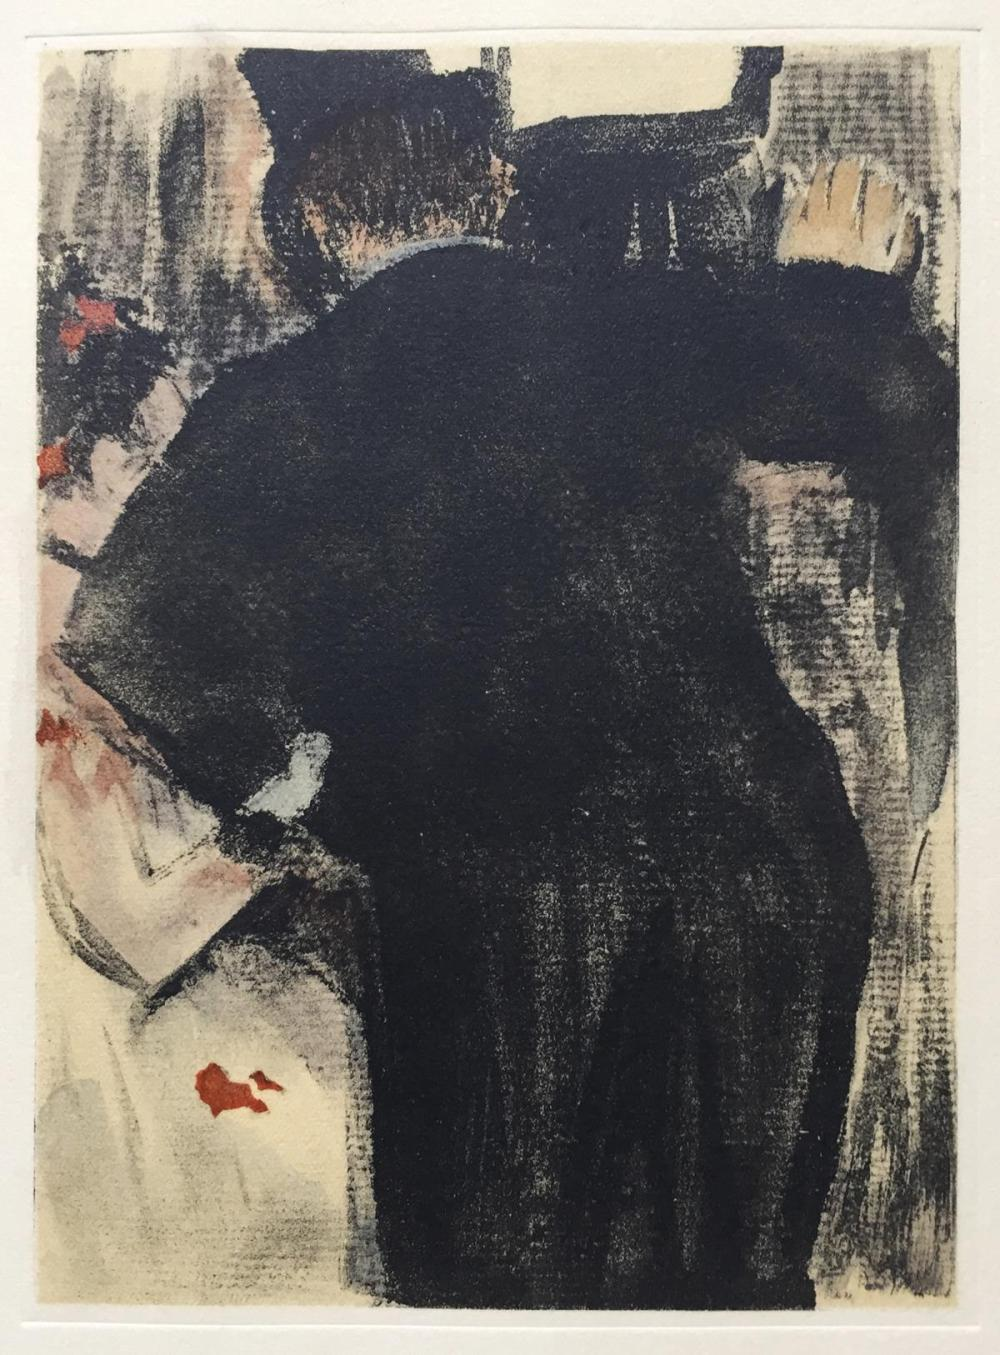 Edgar Degas (After) - Untitled from Famille Cardinal